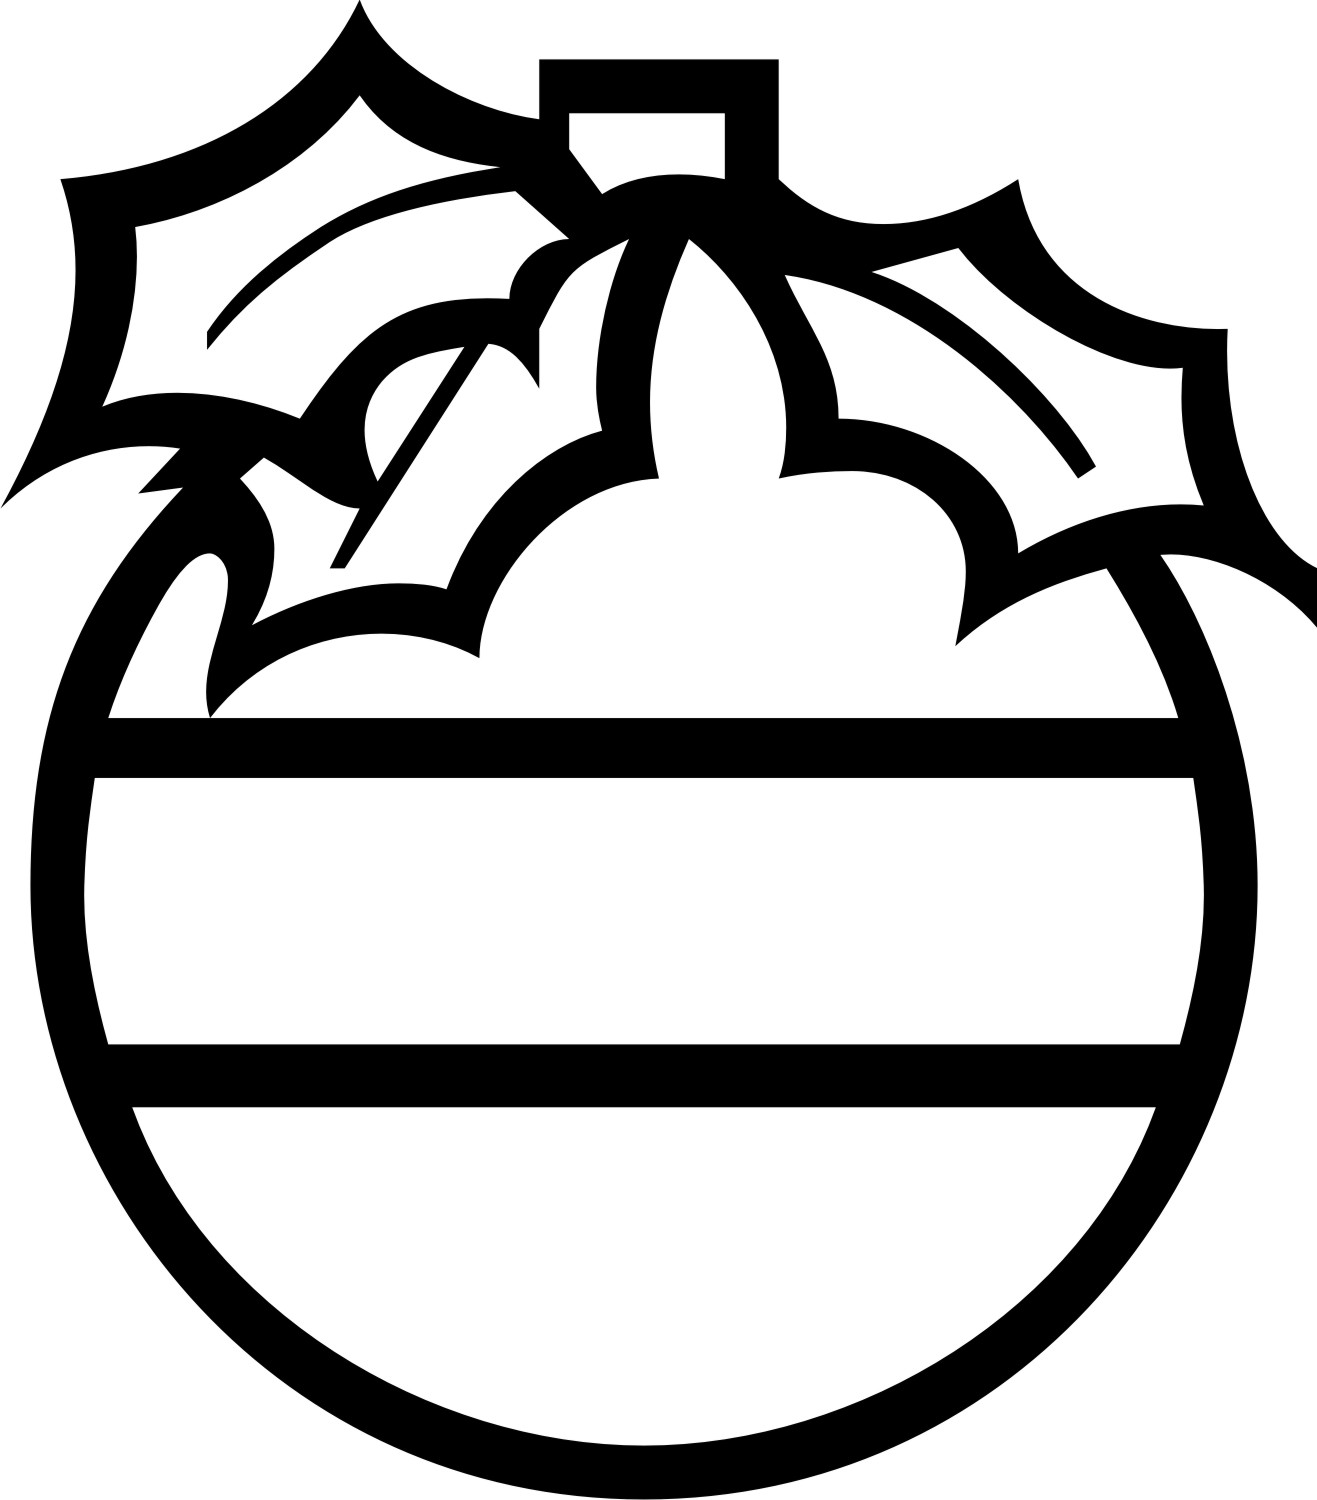 Christmas tree ornaments black and white clipart jpg royalty free library Christmas Ornament Clipart Black And White - 52 cliparts jpg royalty free library